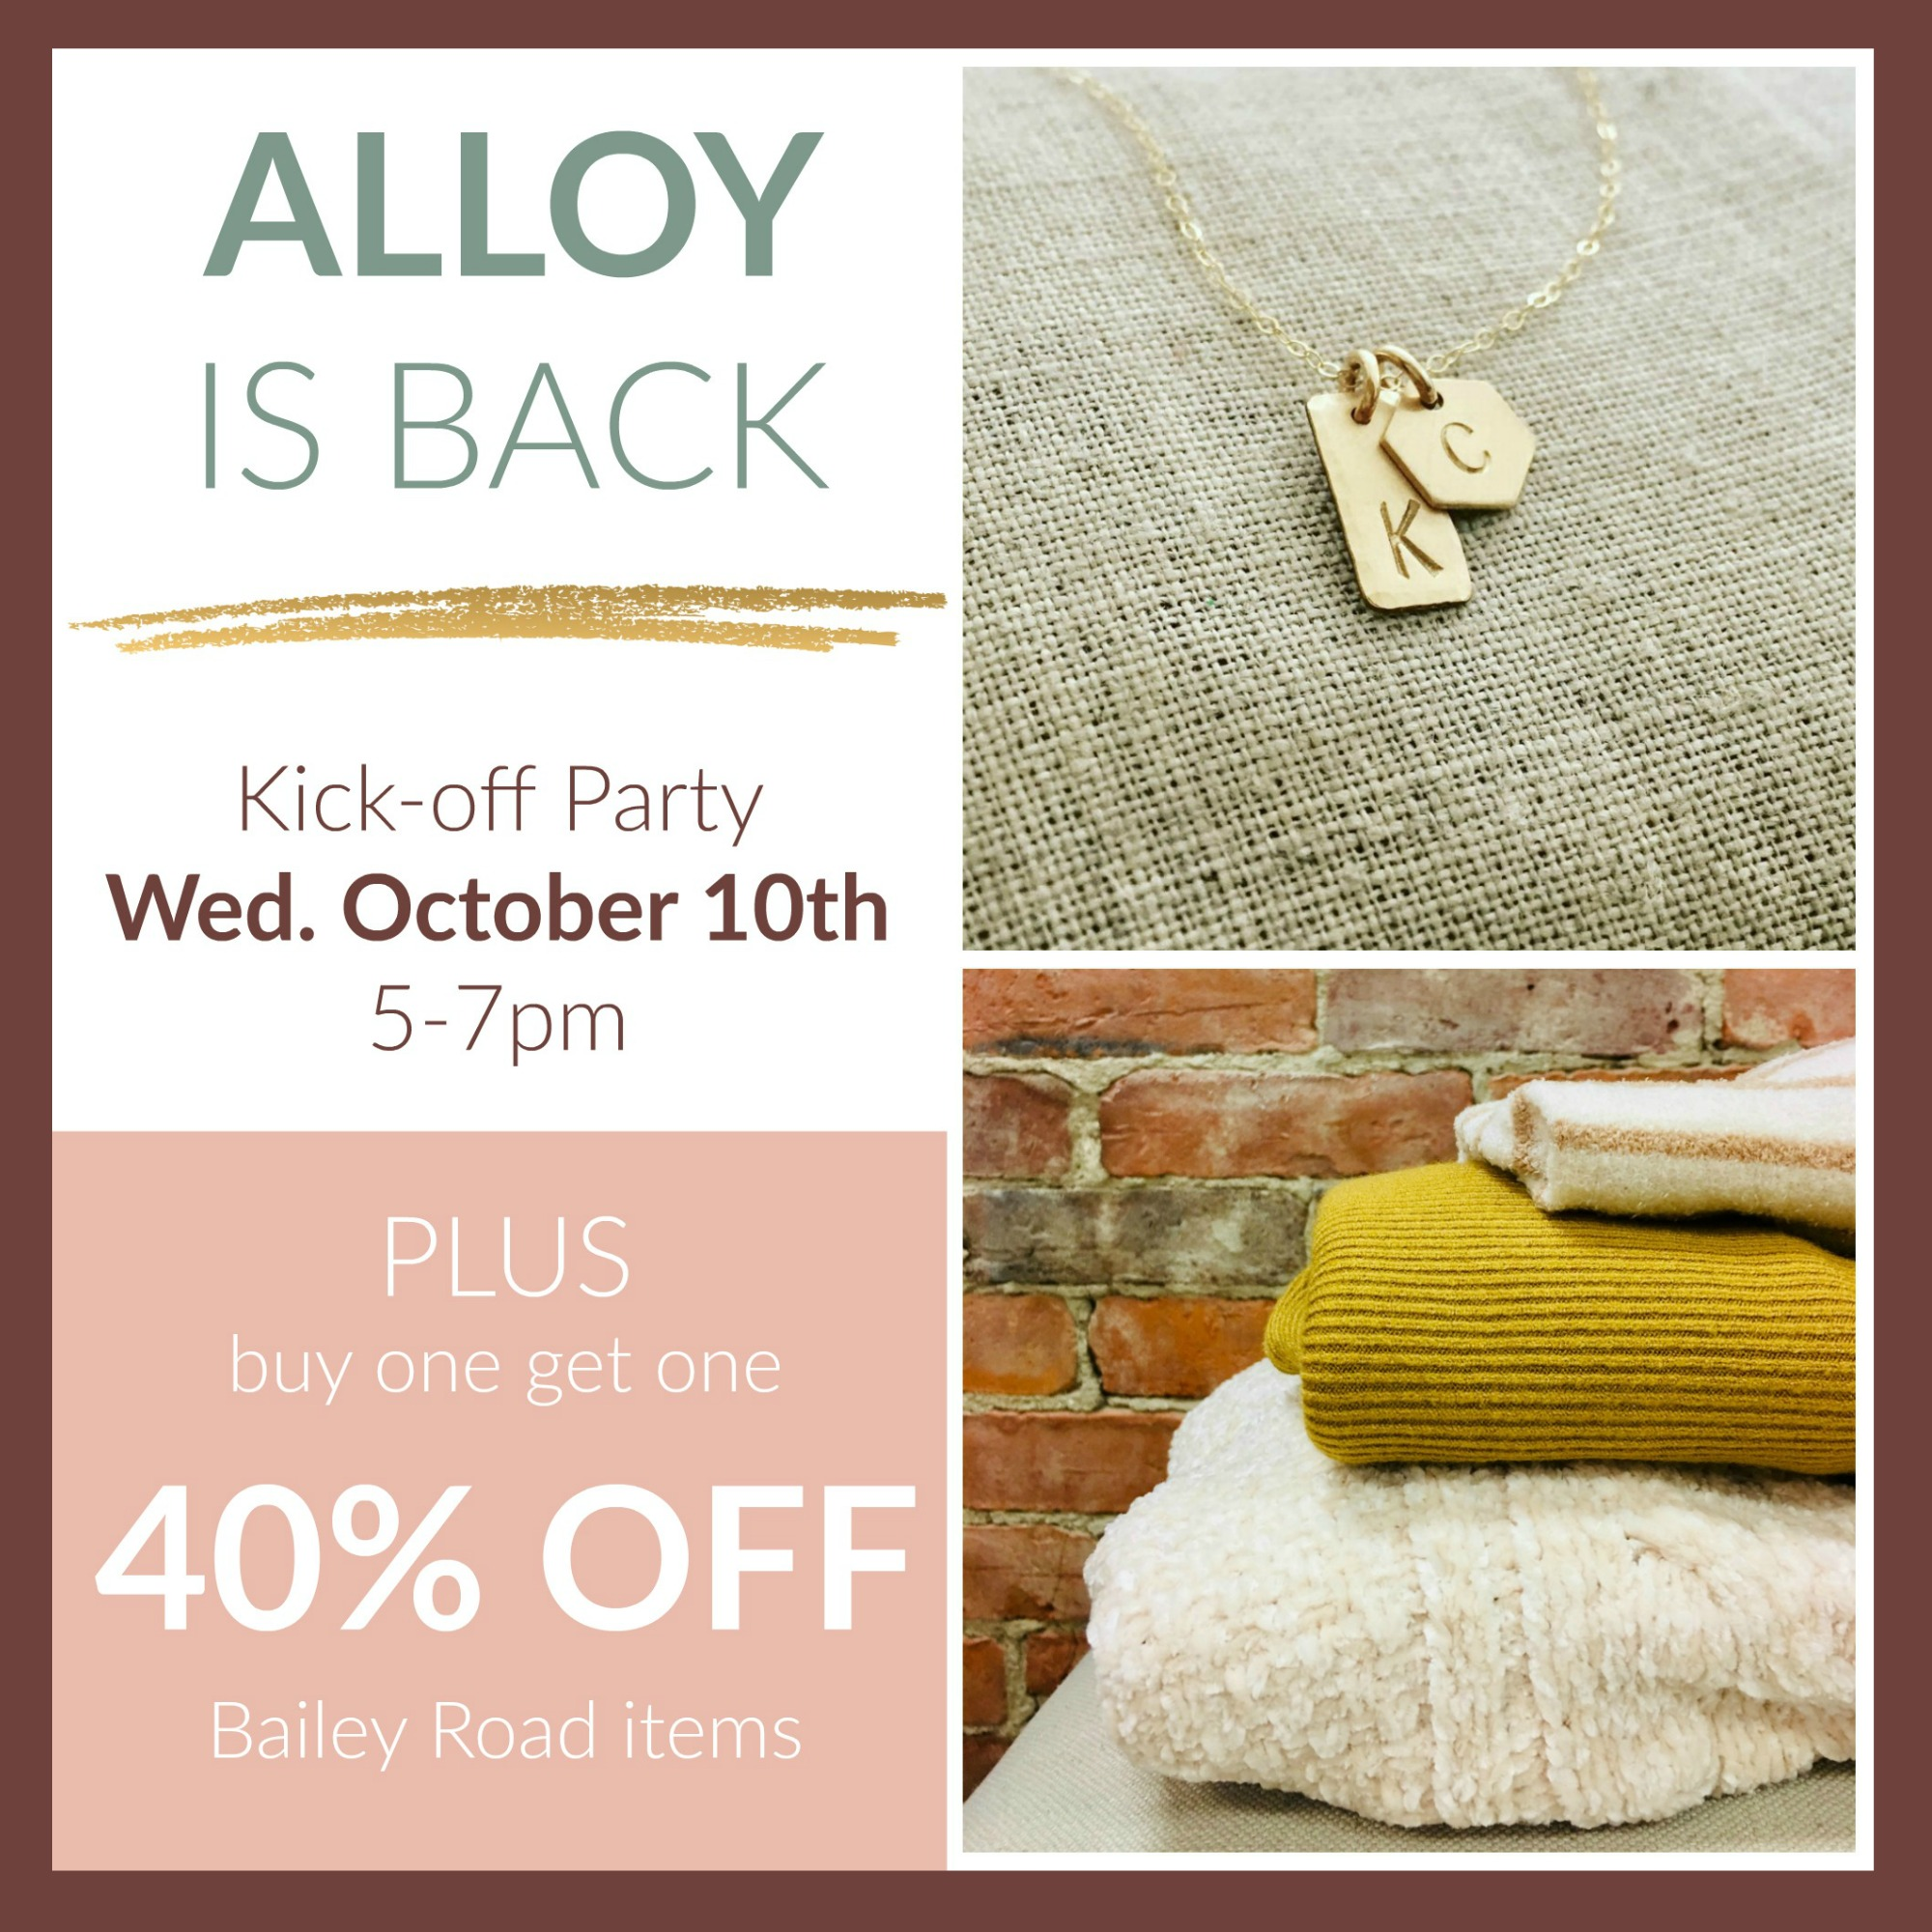 Alloy Jewelry is Back event at Bailey Road in Montpelier, Vermont on October 10th from 5-7pm